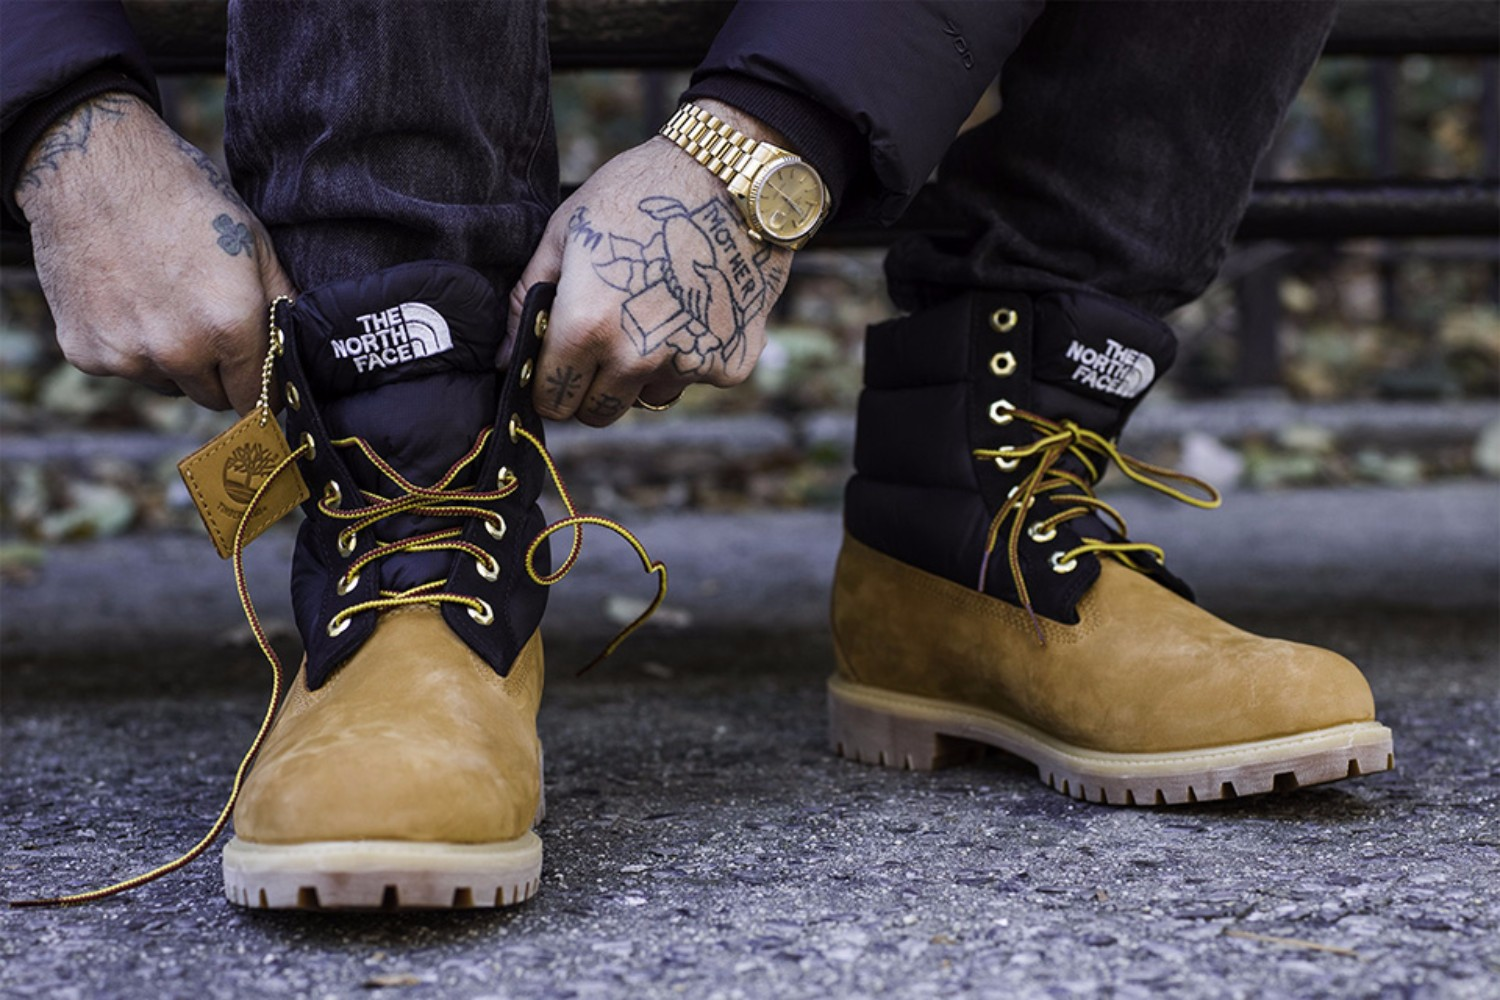 The North Face & Timberland Collaborate for a Winter Capsule